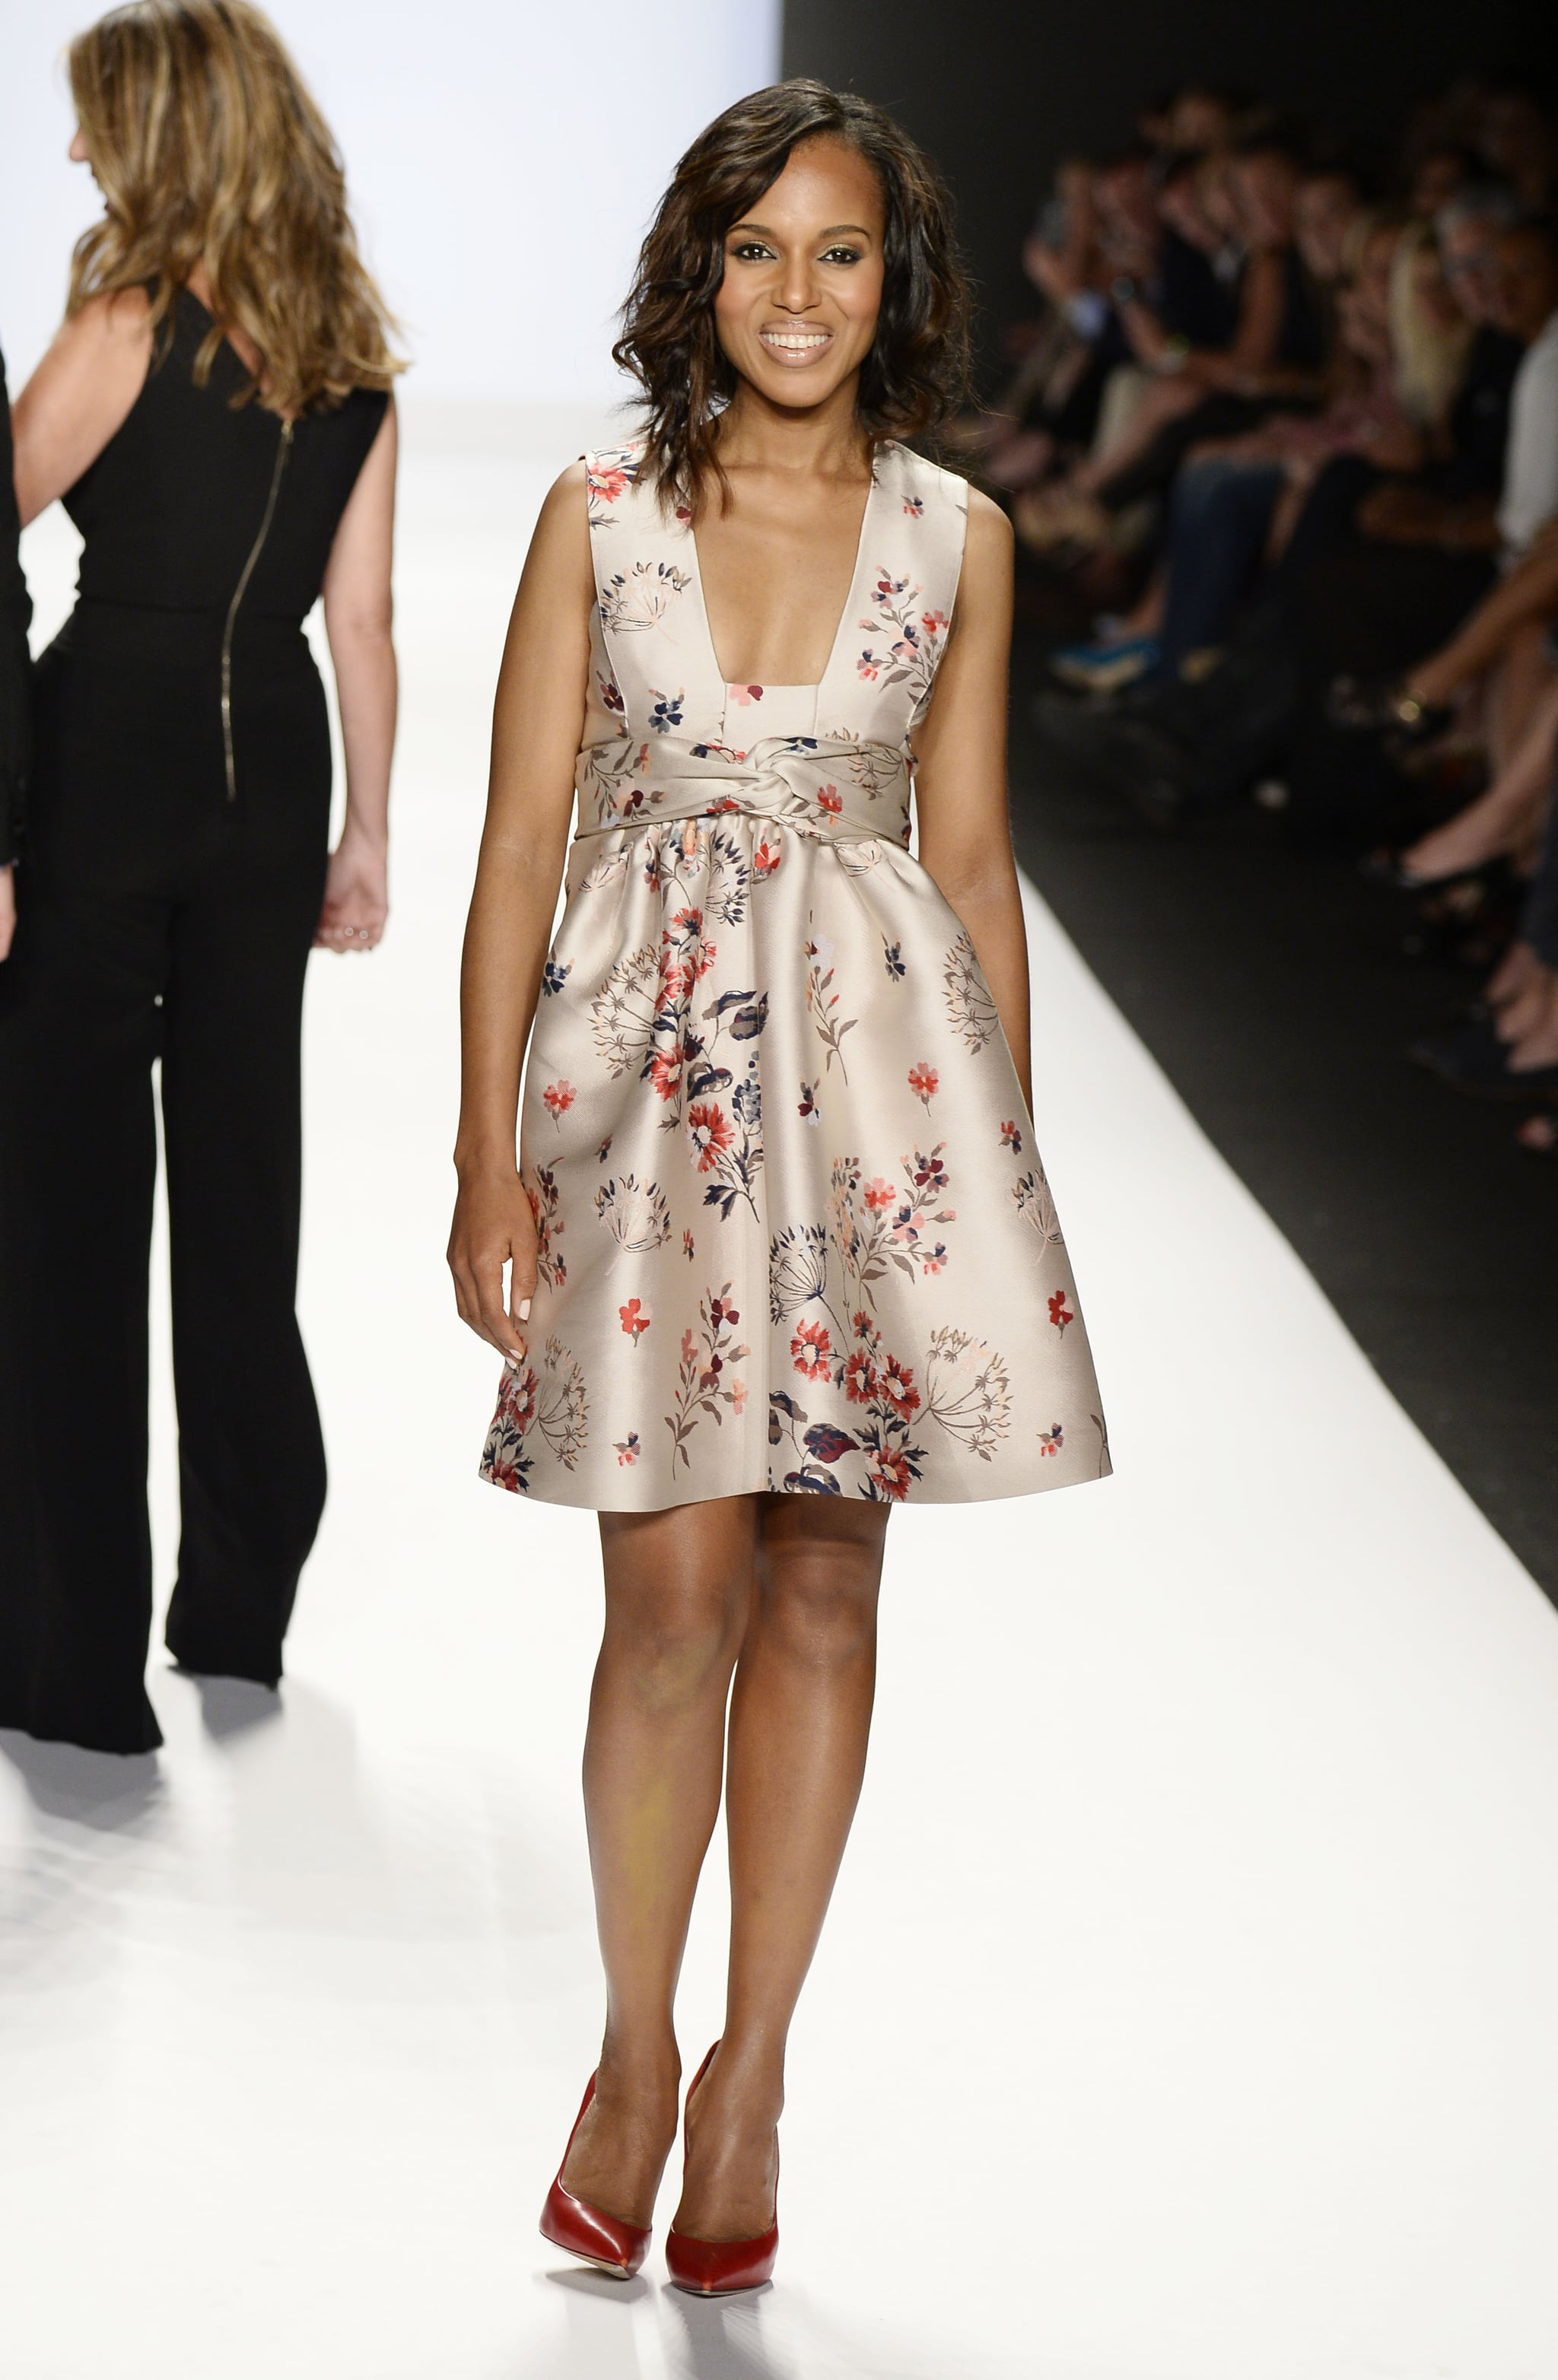 Kerry Washington was glowing as she walked the runway for the Project Runway show on Friday.